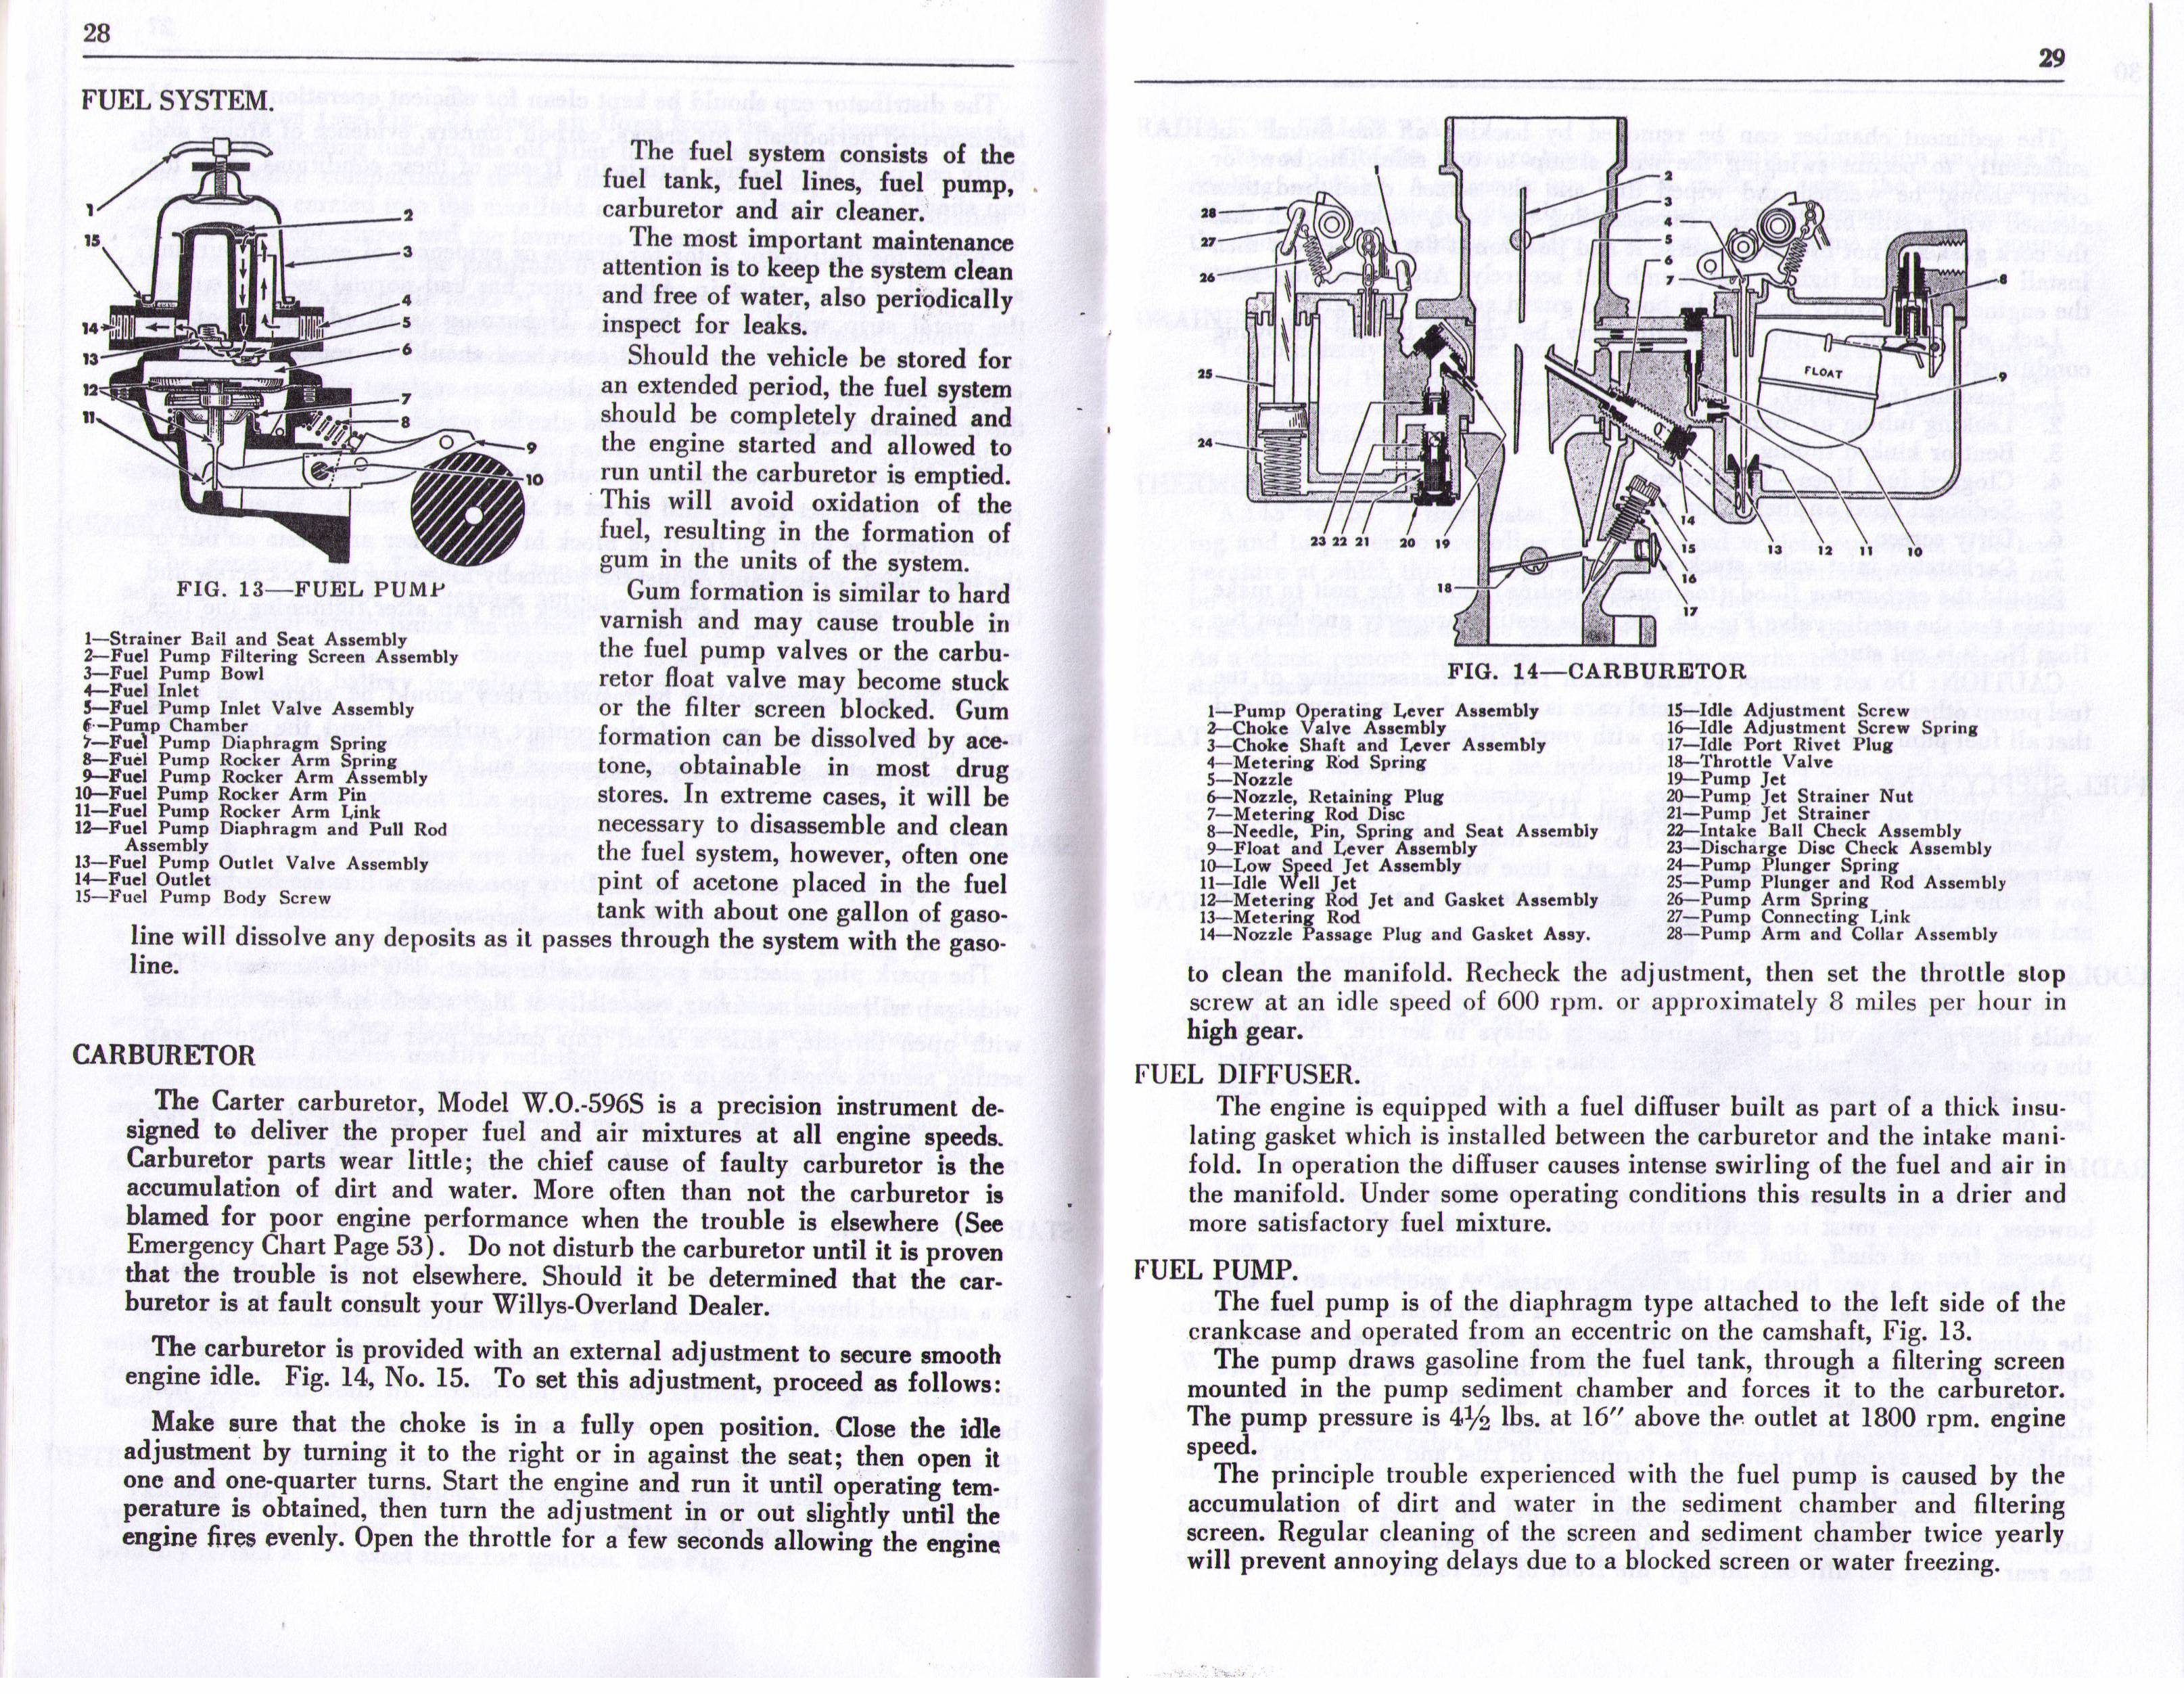 CJ 3B MANUALS - Auto Electrical Wiring Diagram